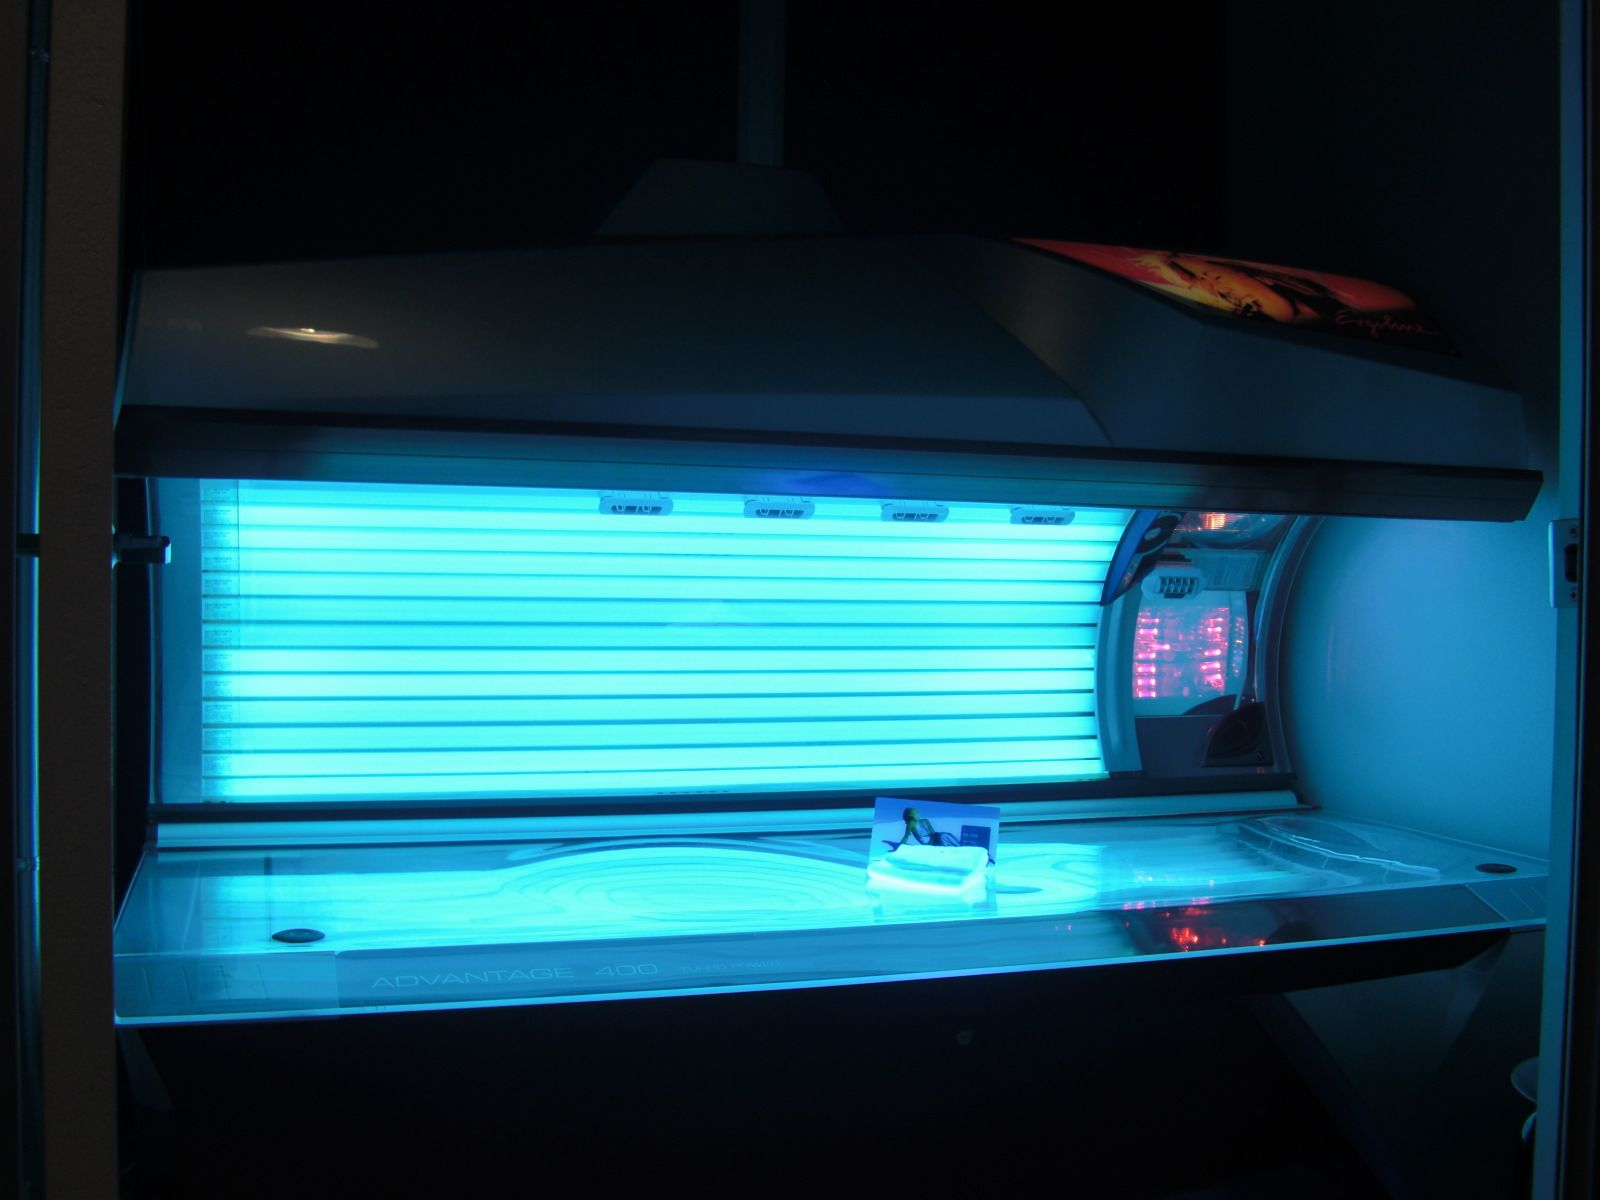 level 4 tanning beds for sale Tanning bed, Tanning beds